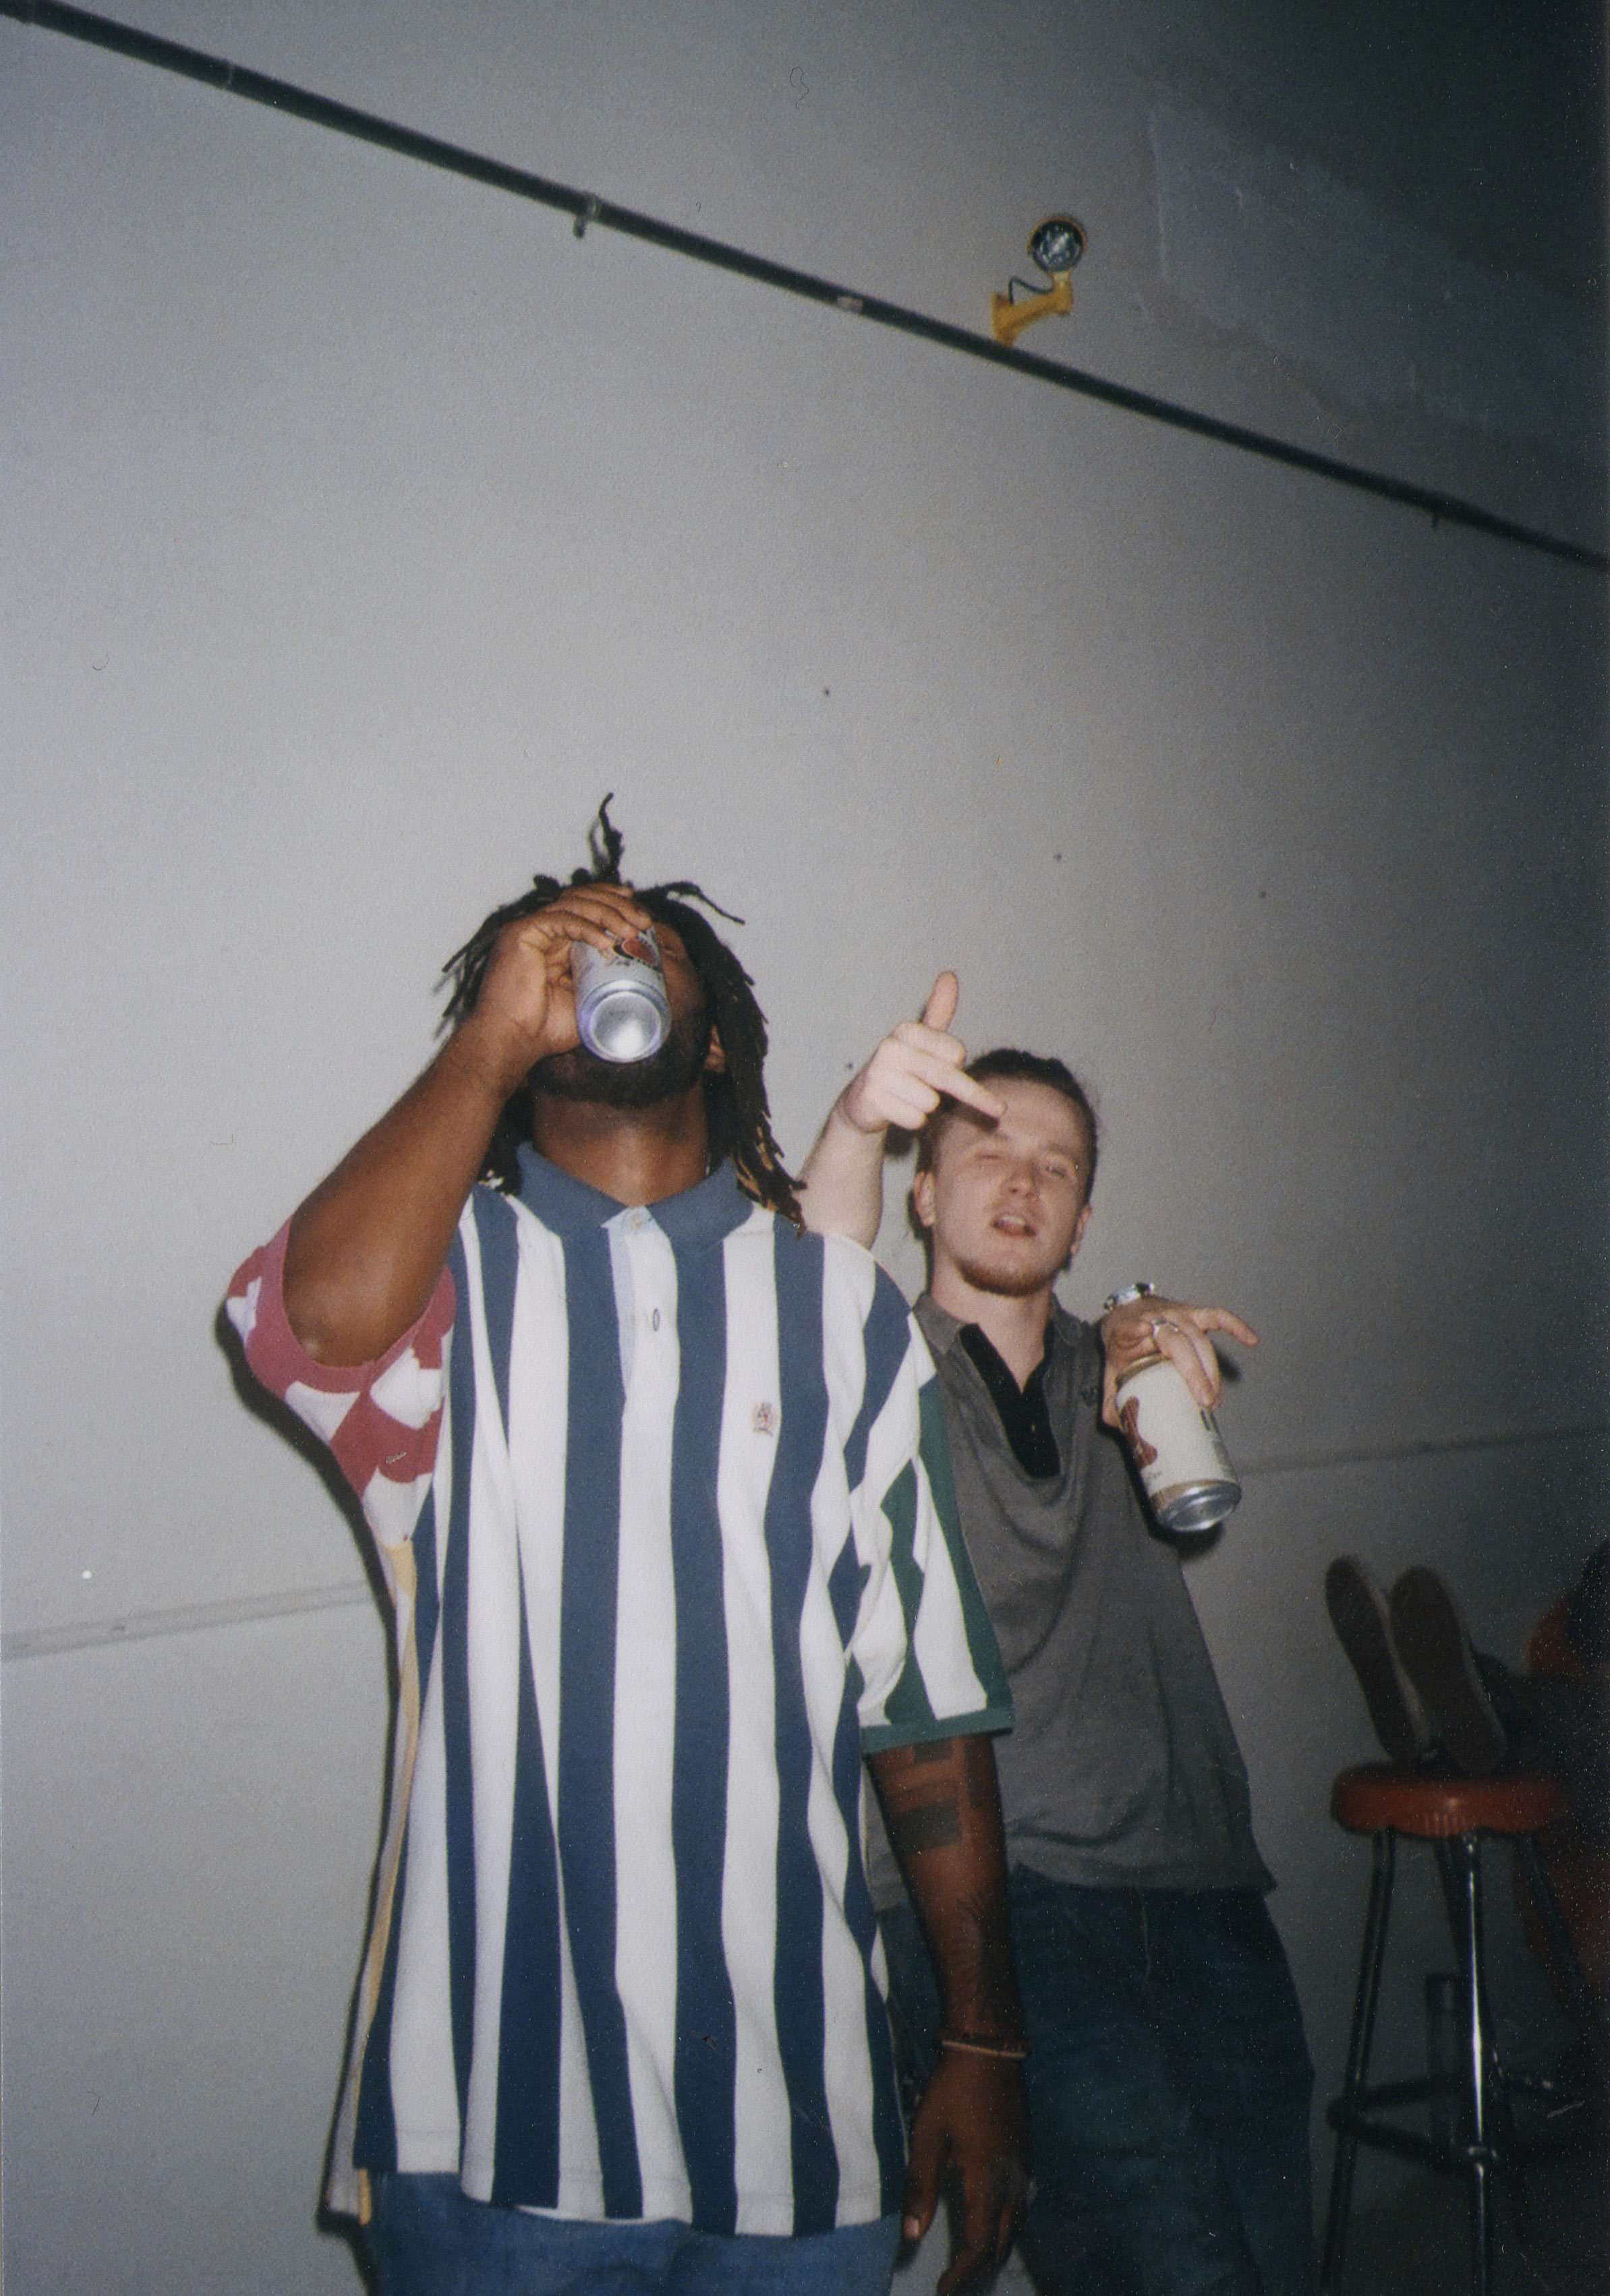 Peter $un and DJ Gringo in Nashville, TN